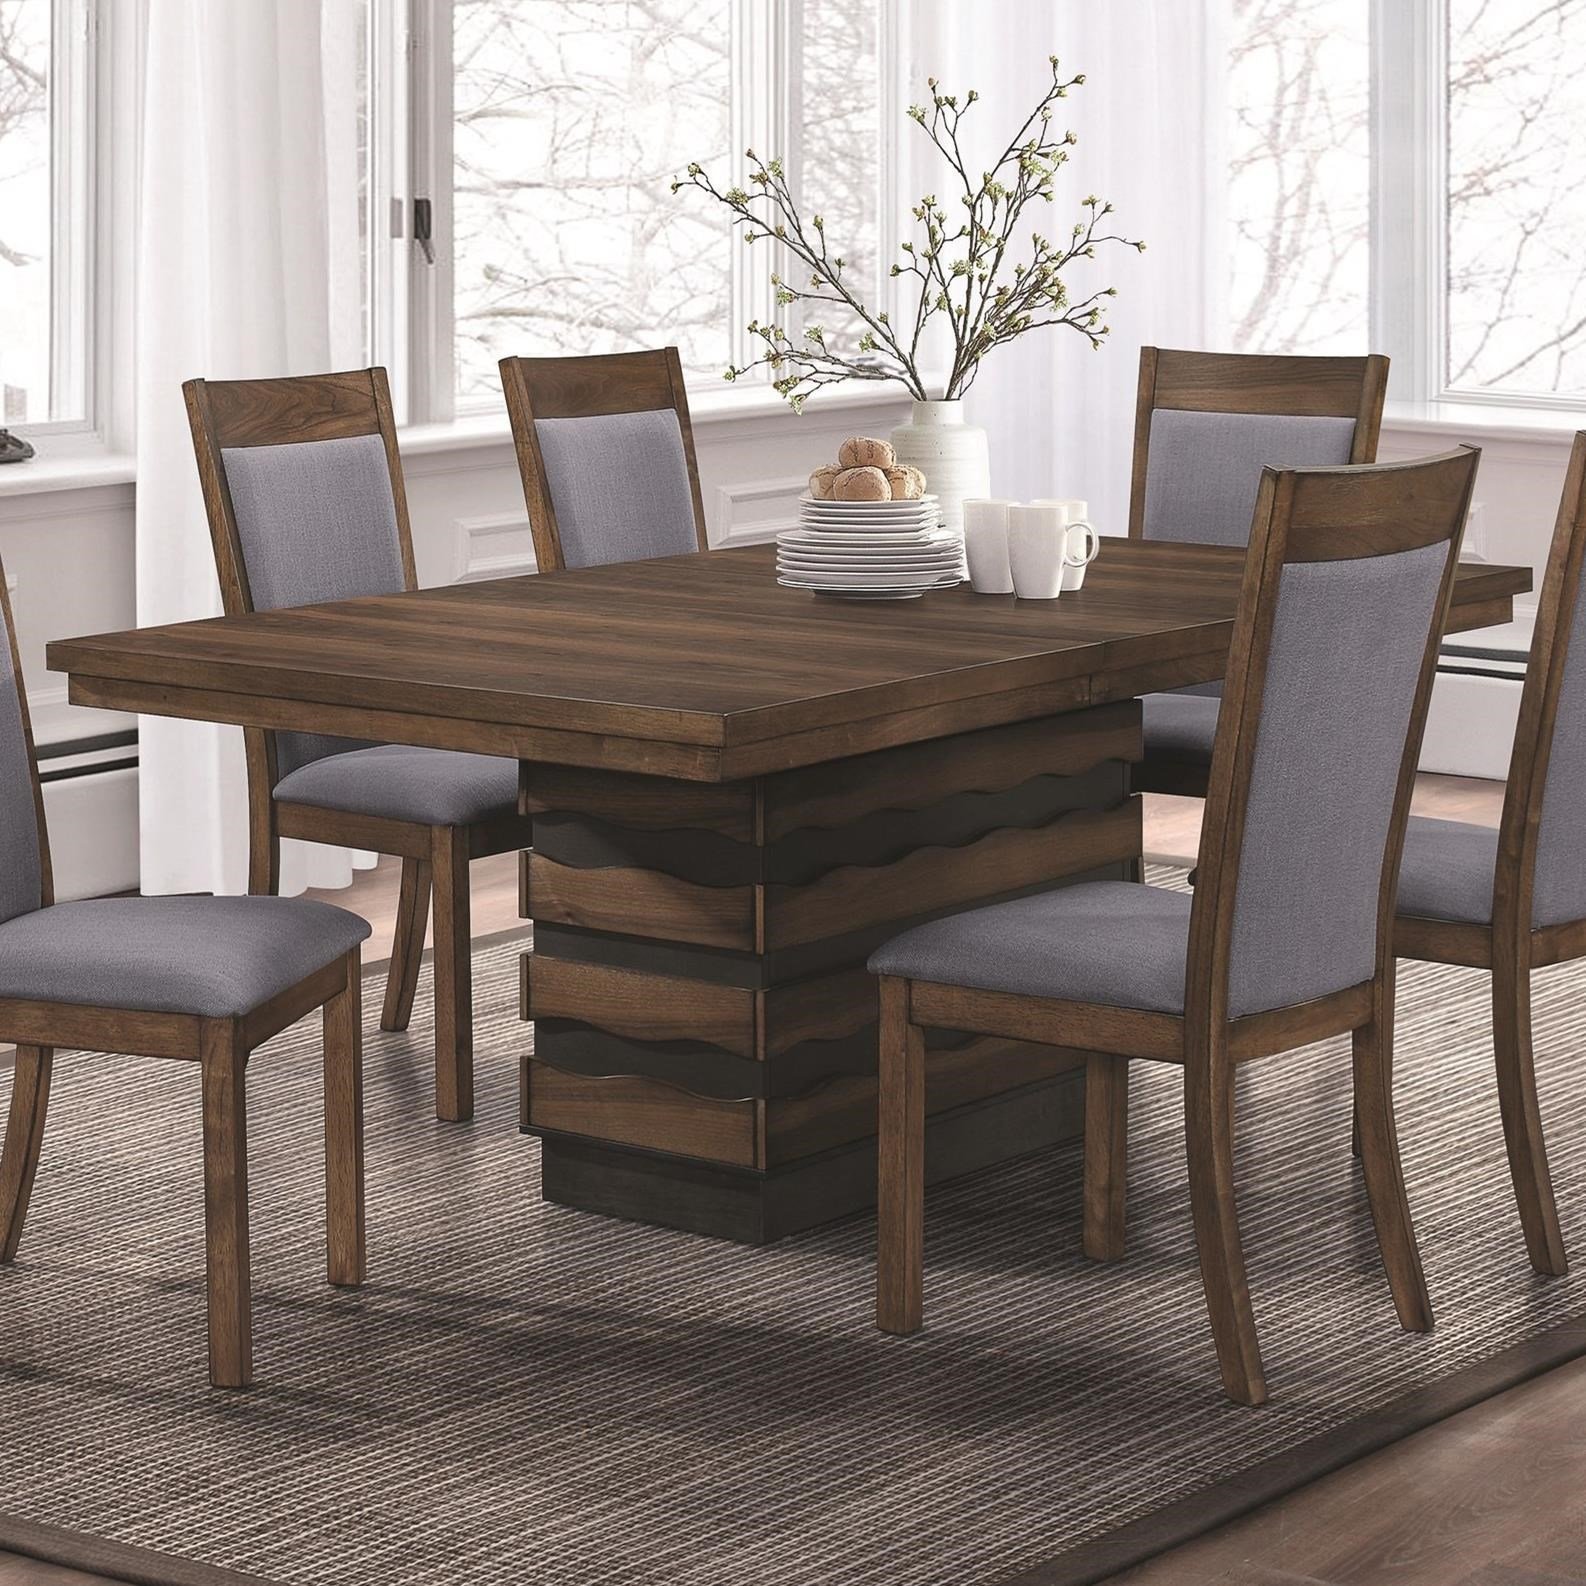 Octavia Dining Table With Hidden Storage In Base Quality